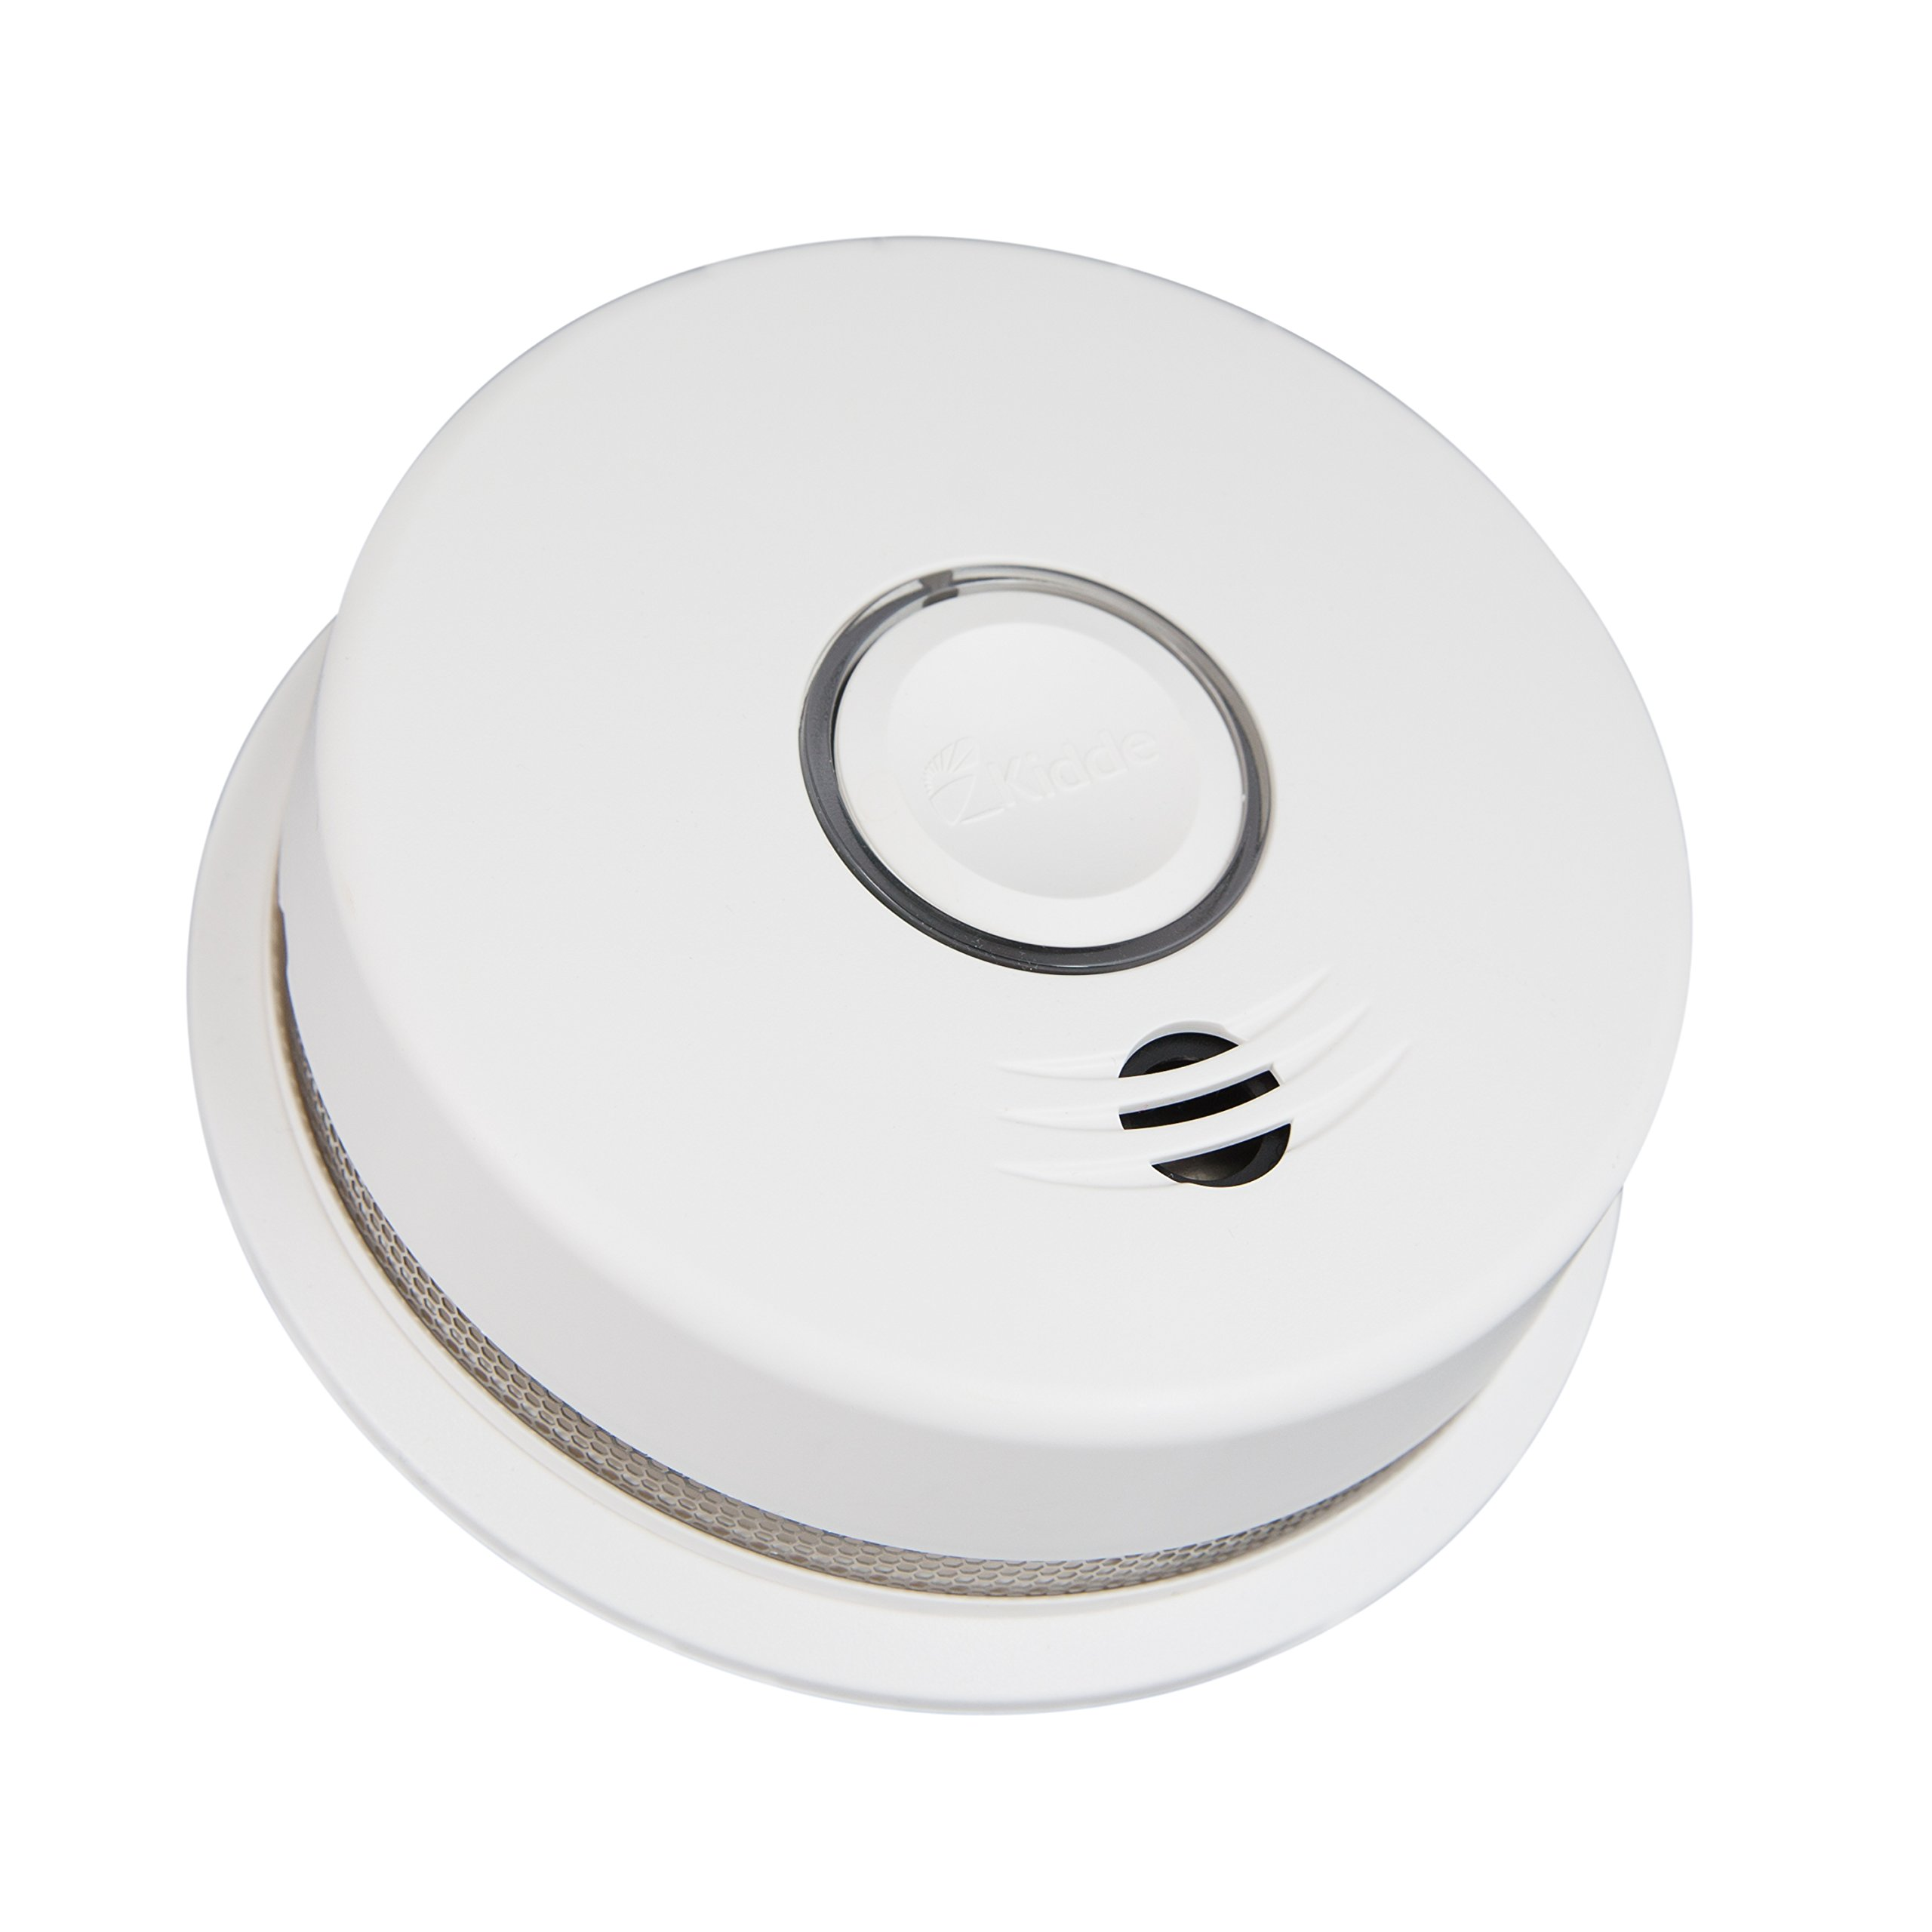 Kidde P4010DCSCO-W Wire-Free Interconnect Combination CO 10-Year Sealed-in Lithium Battery Smoke Alarm by Kidde